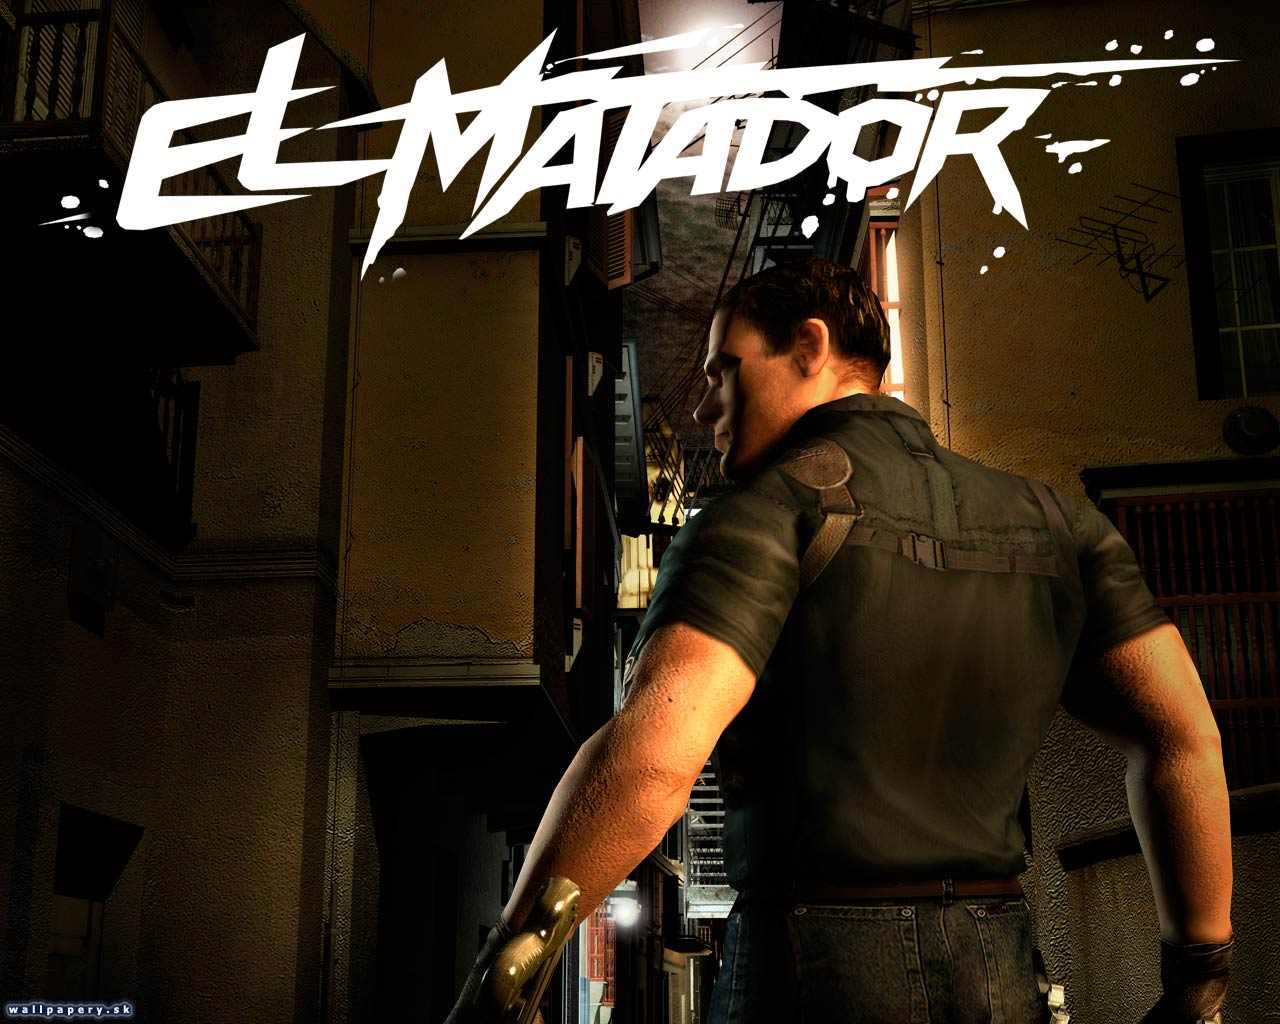 El Matador - wallpaper 12